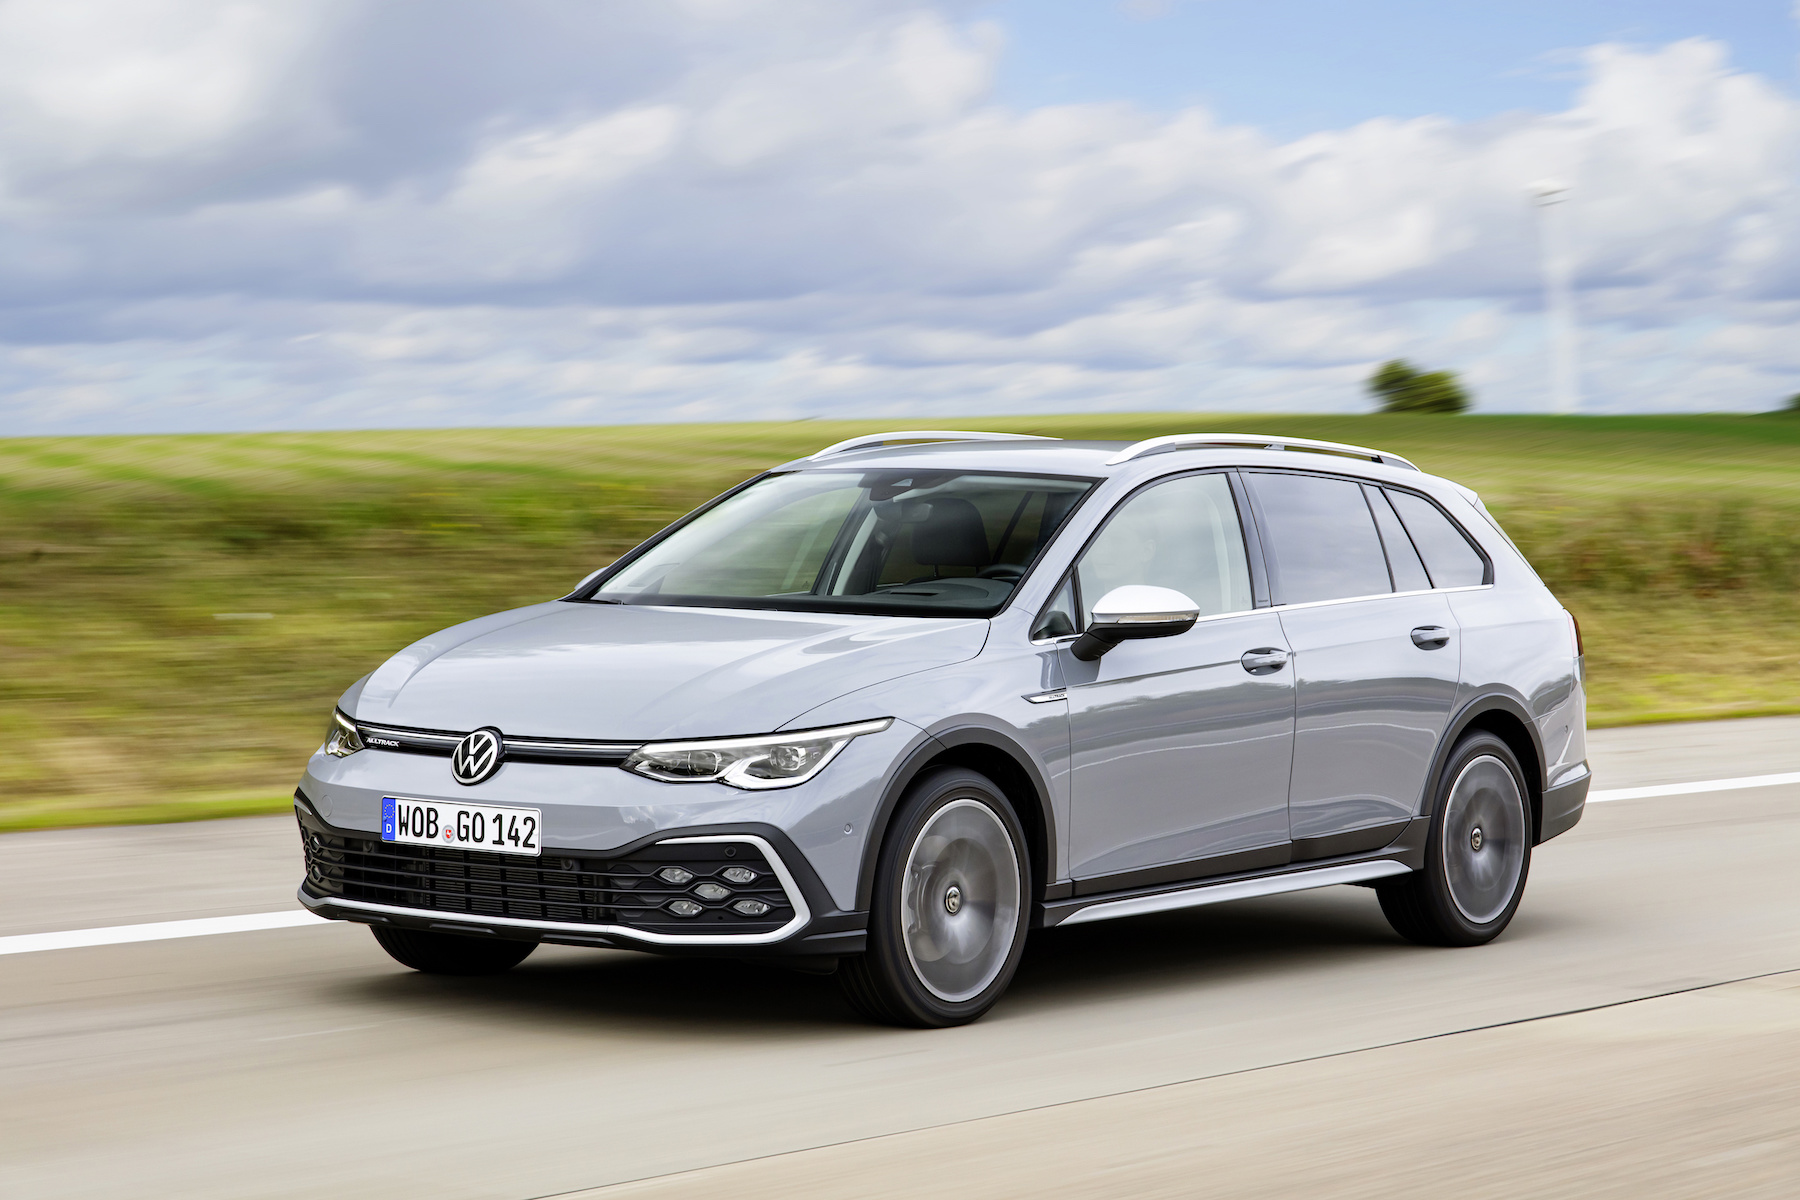 New Volkswagen Golf Estate Prices And Specs Announced Car Keys